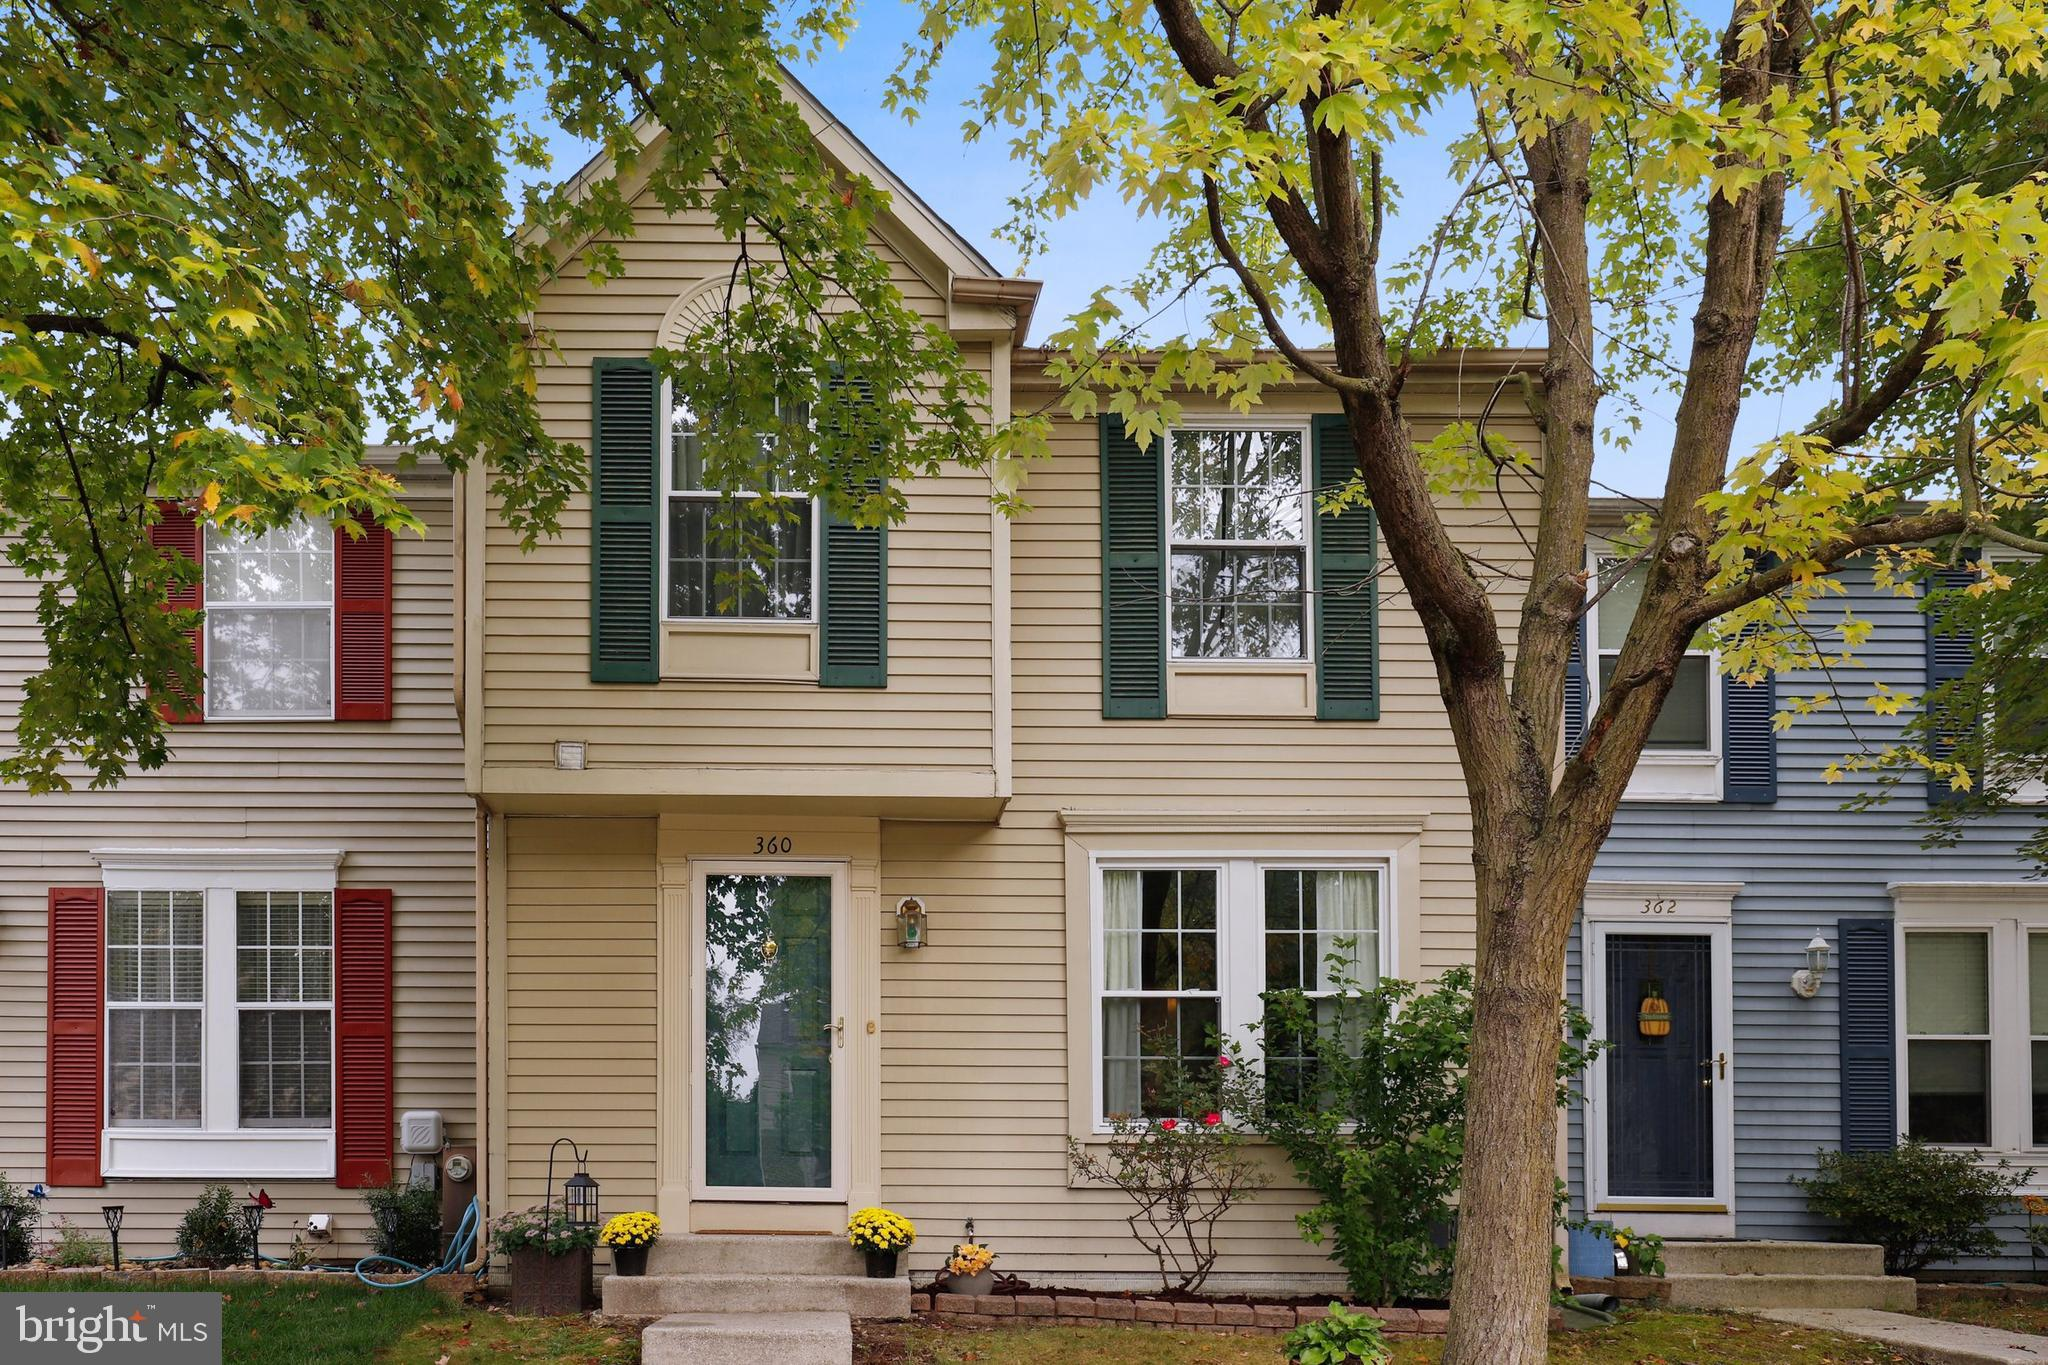 Don't miss the opportunity to own this very nicely maintained and updated 3 level townhome in Aspen